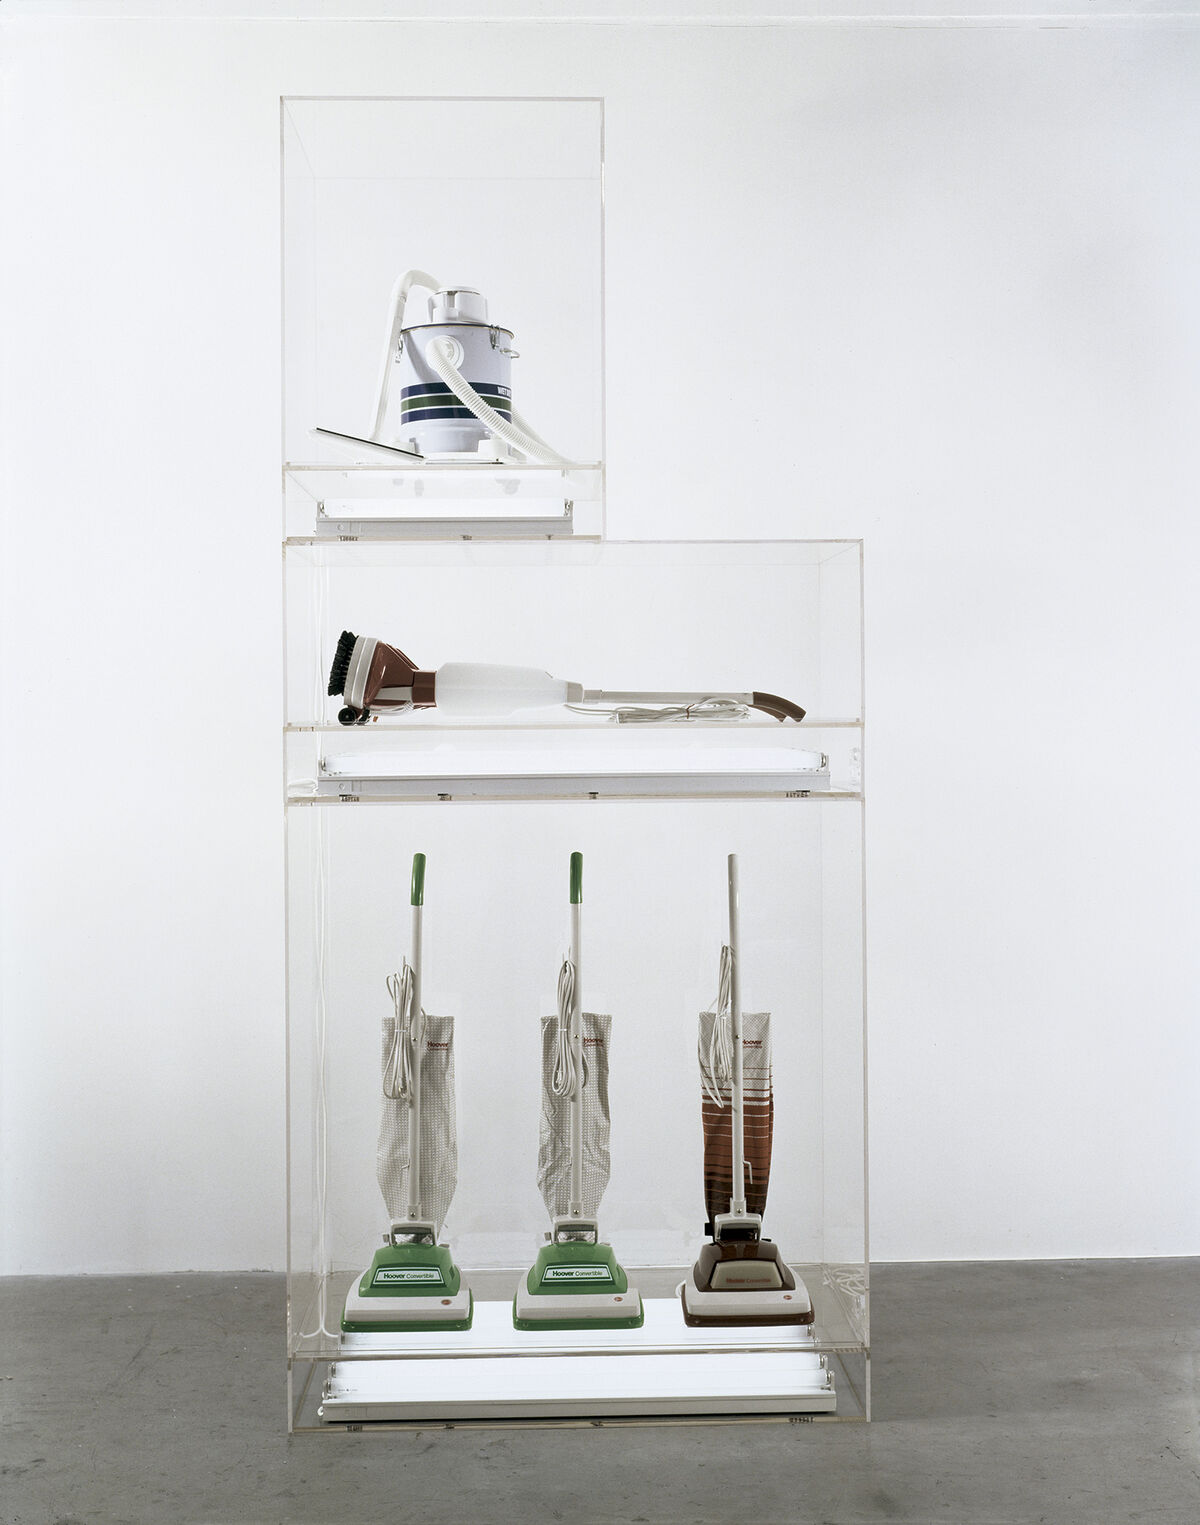 Jeff Koons, New Hoover Convertibles, New Shelton Wet/Drys 5 Gallon, Doubledecker, 1981–1987. © Jeff Koons. Courtesy of the Astrup Fearnley Collection, Oslo, Norway, and Museo Jumex.